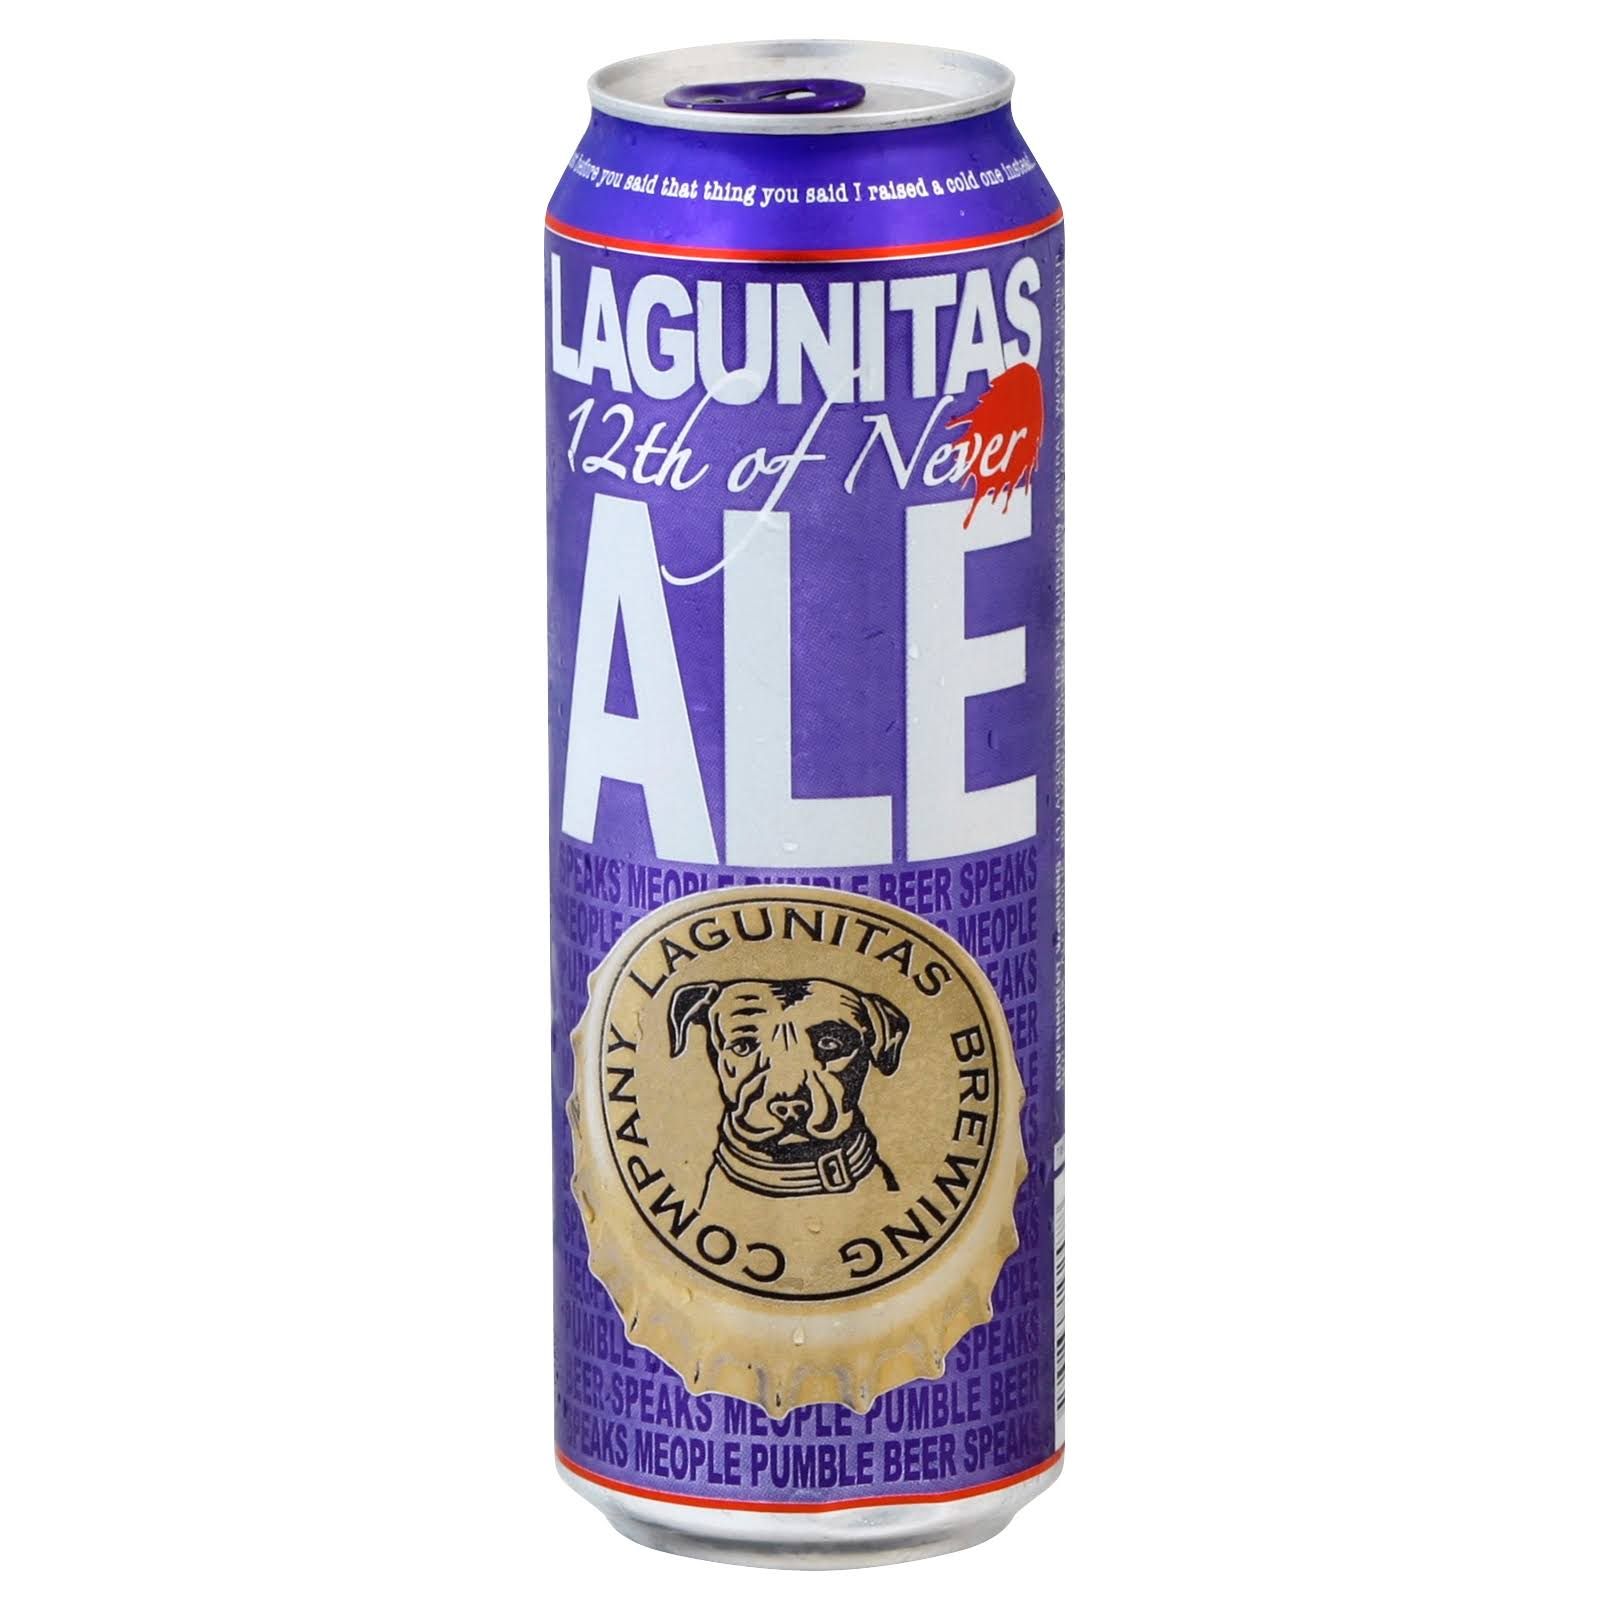 Lagunitas Beer, Ale, 12th of Never - 19.2 fl oz